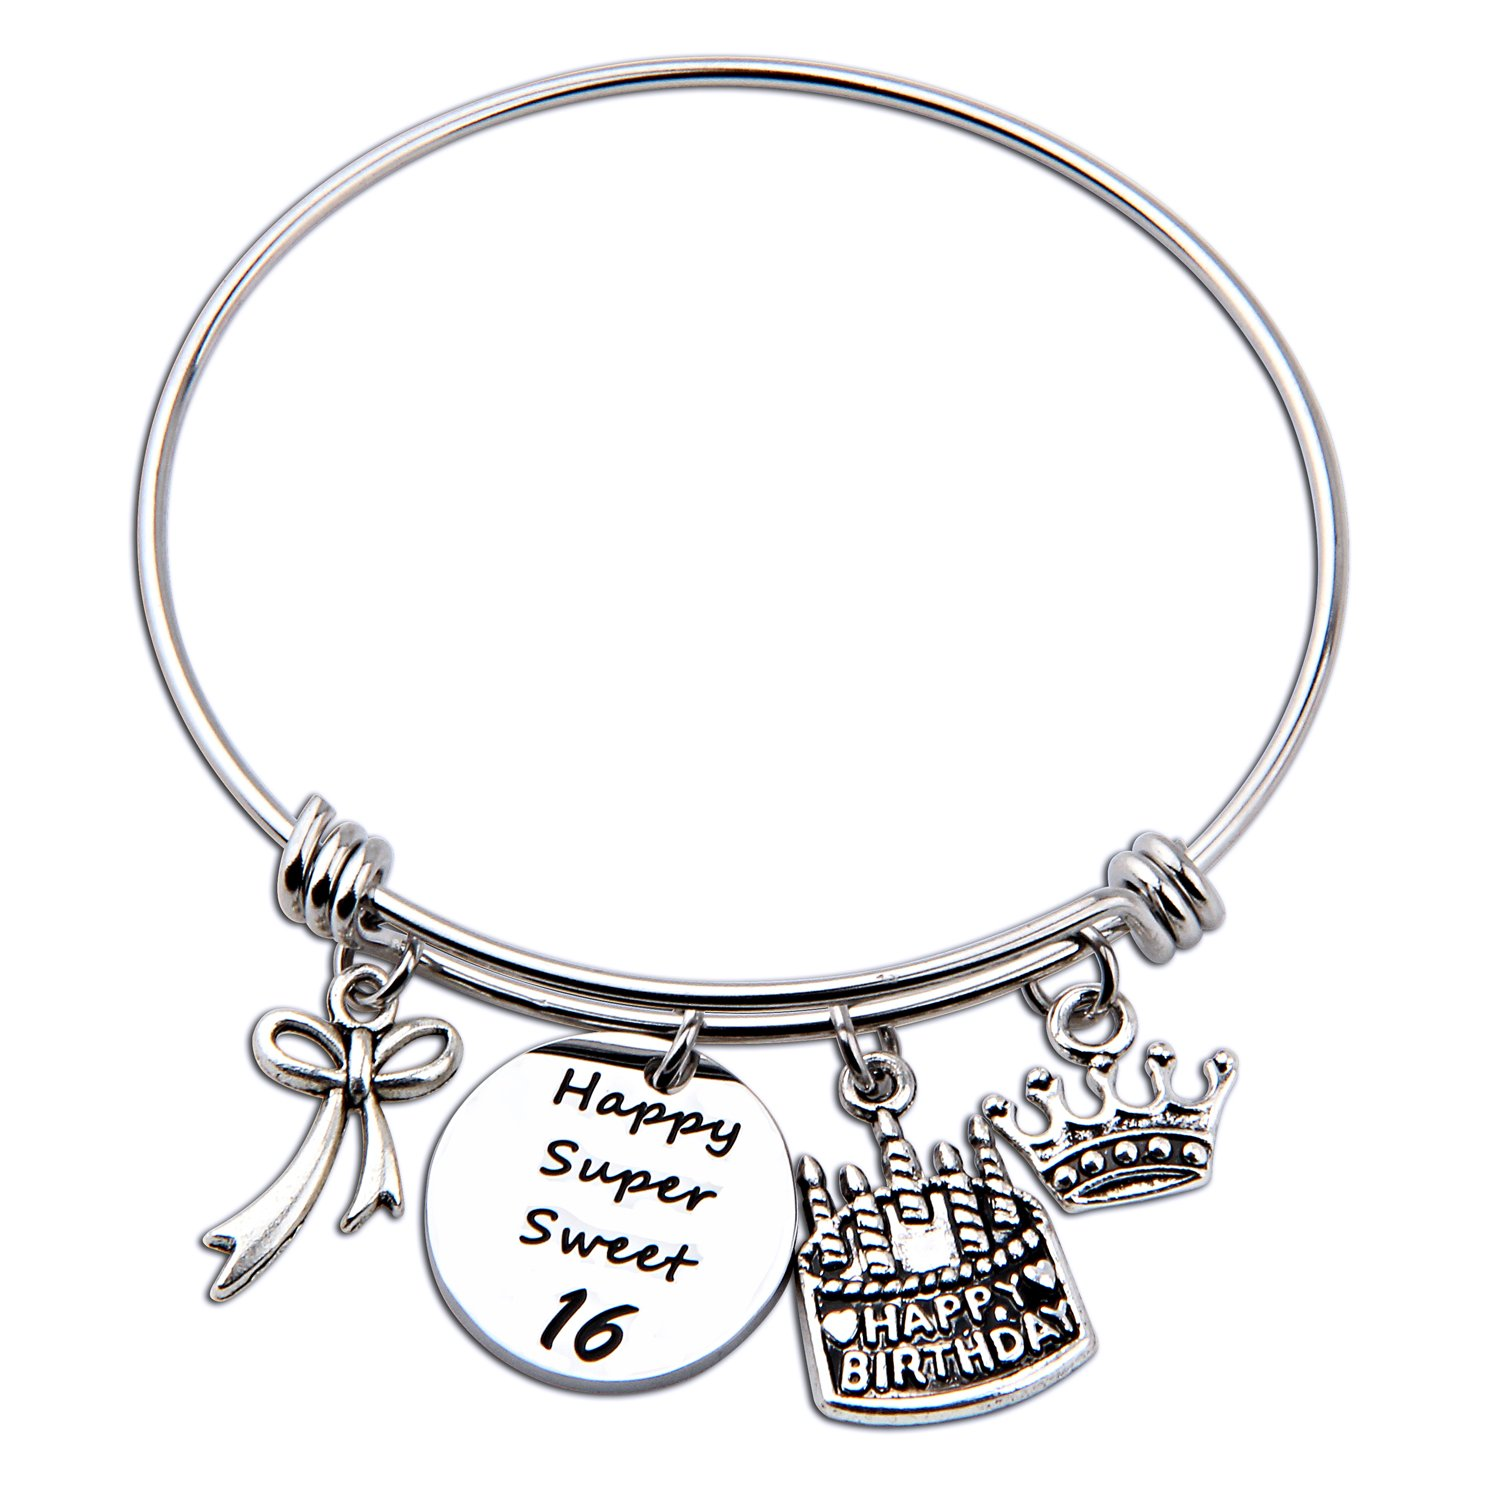 cheap ideas 30th birthday gift find ideas 30th birthday gift deals Birthday Cake with Vegetables get quotations birthday gift for her adjustable birthday bracelet bangle with birthday cake charm 10th 12th sweet